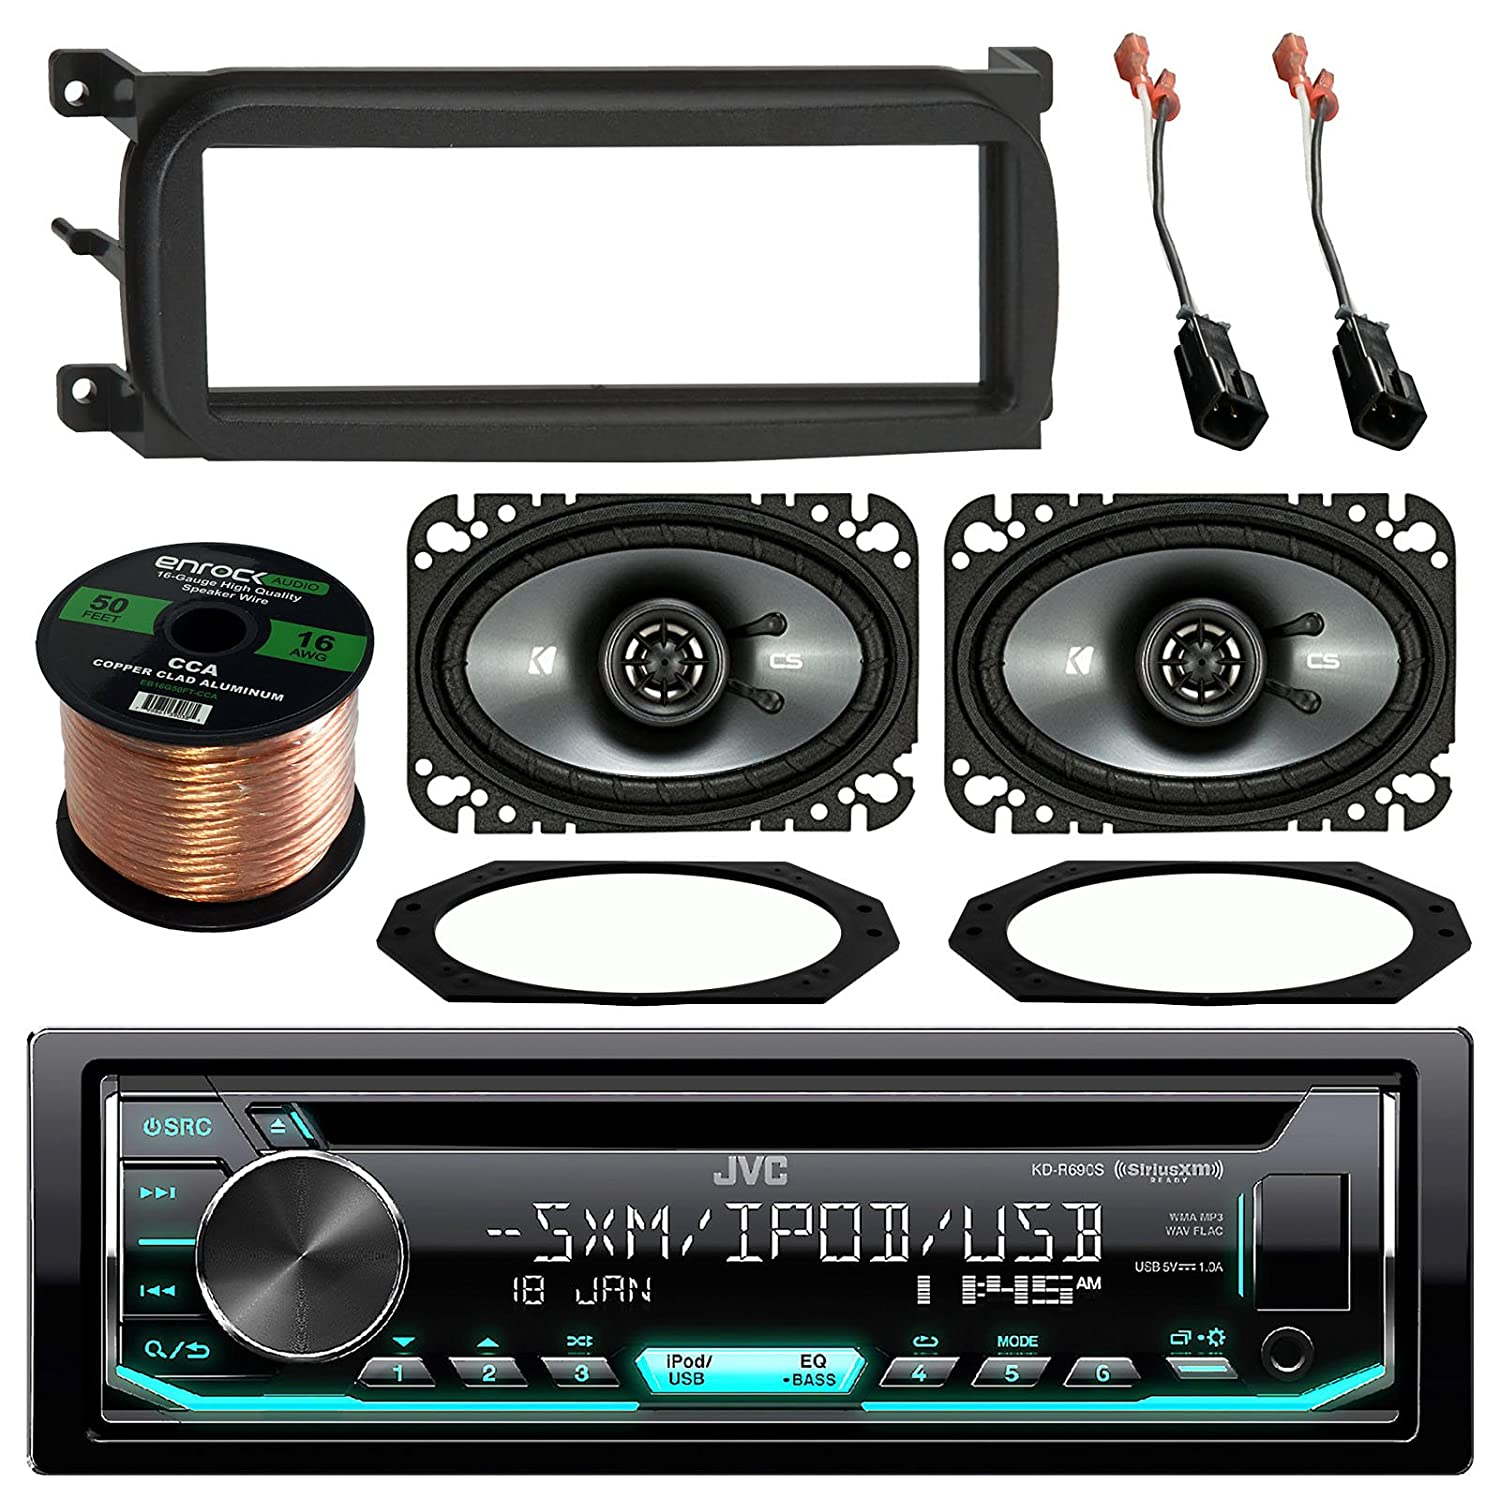 Jvc Kdr690s Cd Mp3 Wma Player Stereo Receiver Bundle Are 1990 And 1994 Jeep Wrangler Wiring Harnesses Connections Combo W Dash Kit 2x Kicker 4x6 Audio Speaker Adapter Plates 2 Pin Connectors For 1997 06